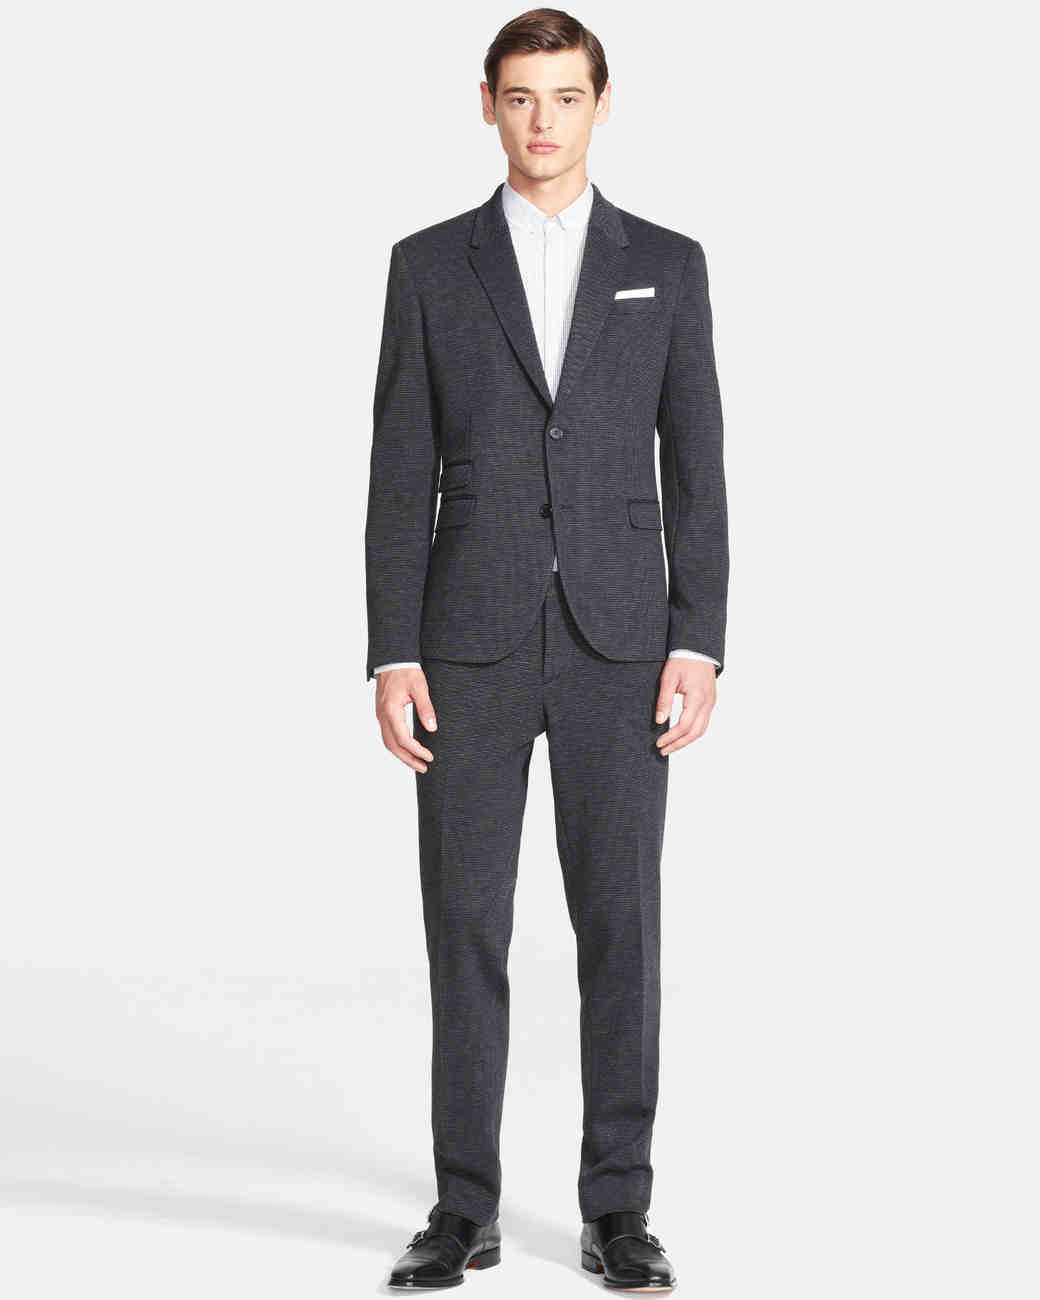 fall-groom-suits-nordstrom-neil-barrett-jersey-suit-1014.jpg